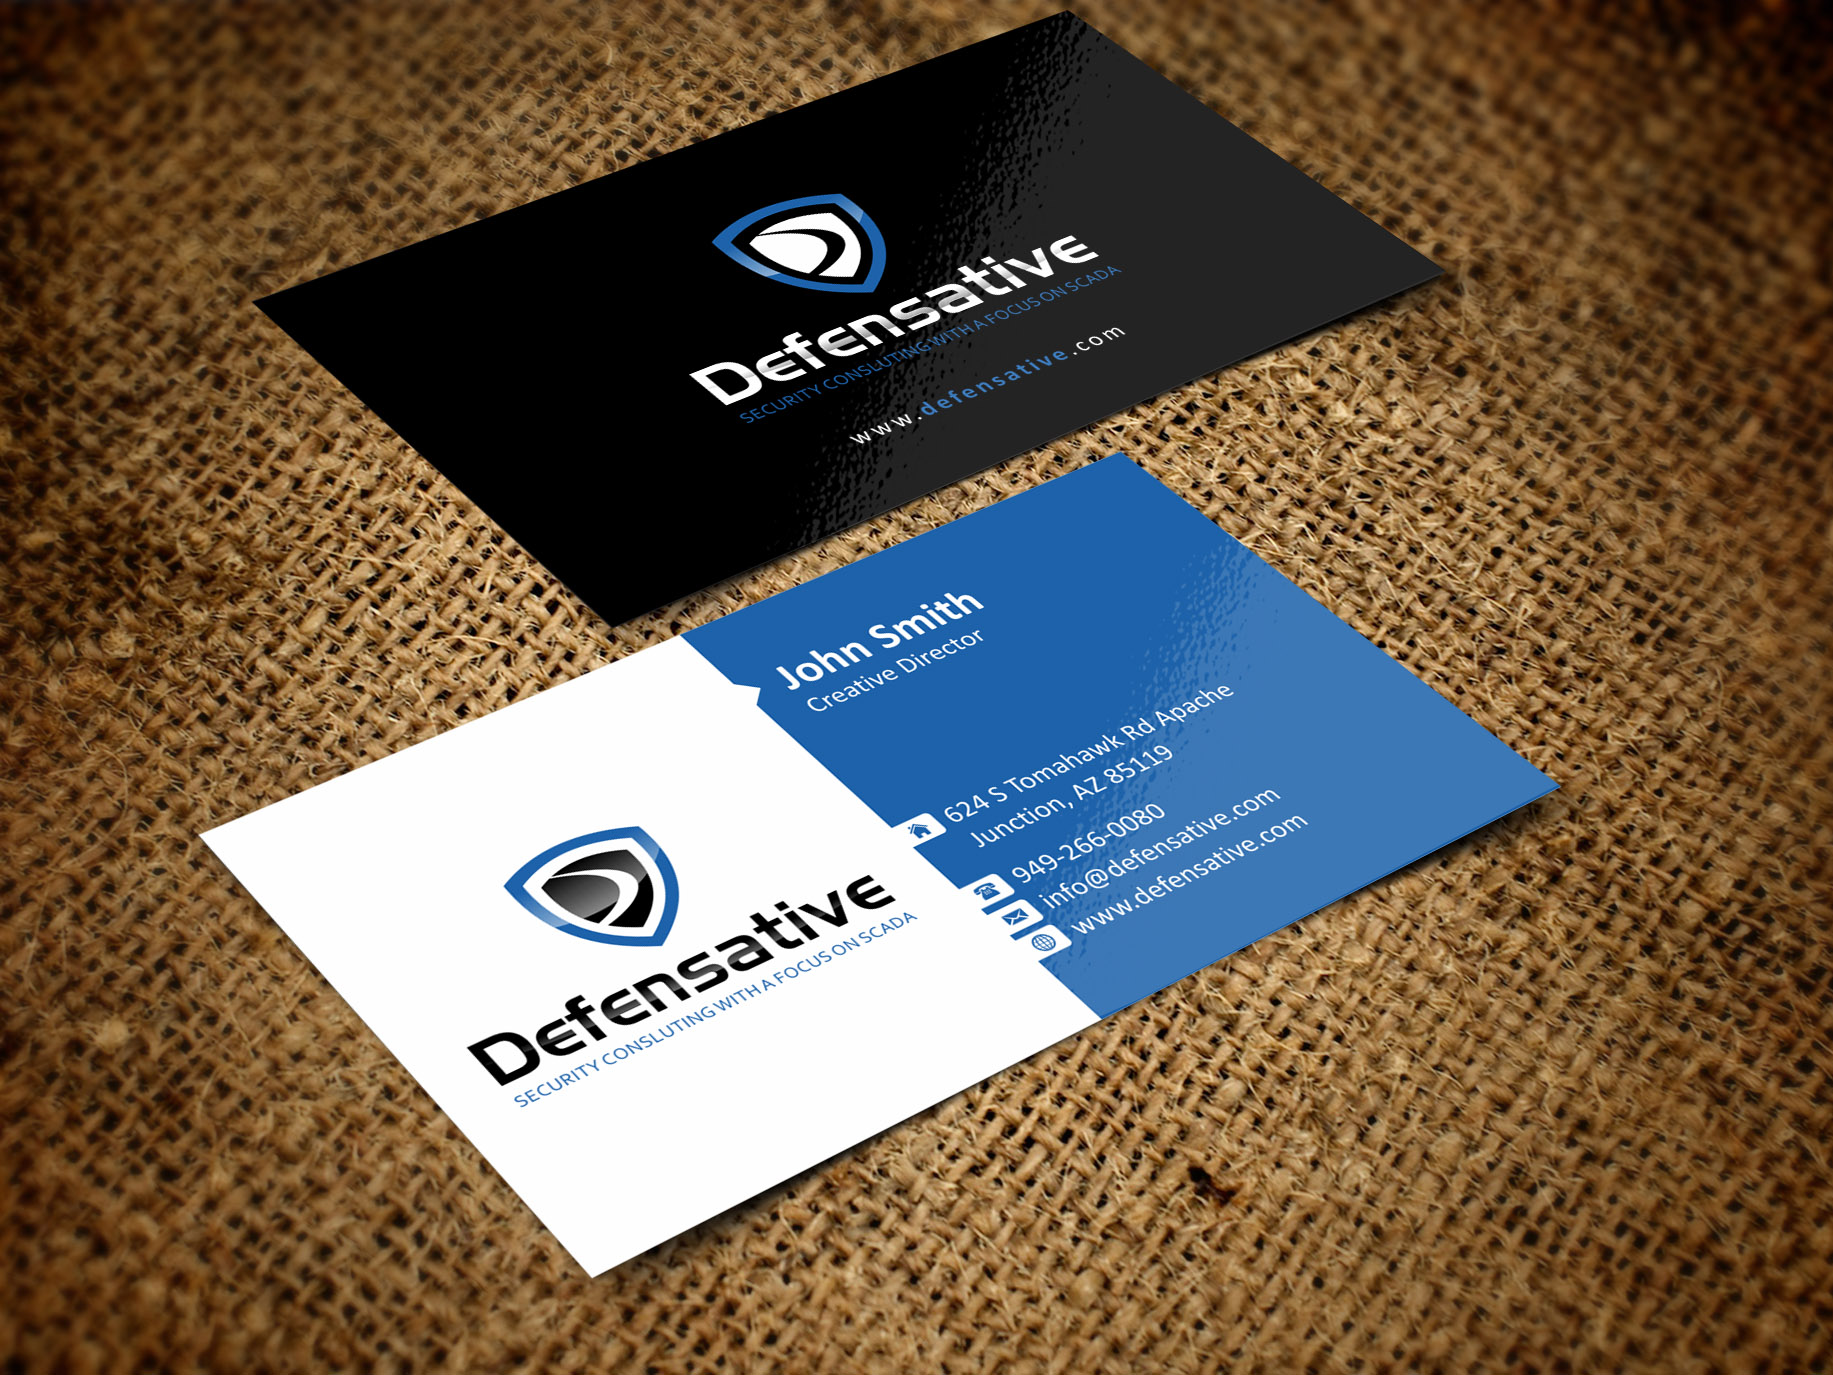 Custom Design by Muhammad Aslam - Entry No. 24 in the Custom Design Contest Custom Design Business Cards+Logo+Stationary for Defensative.